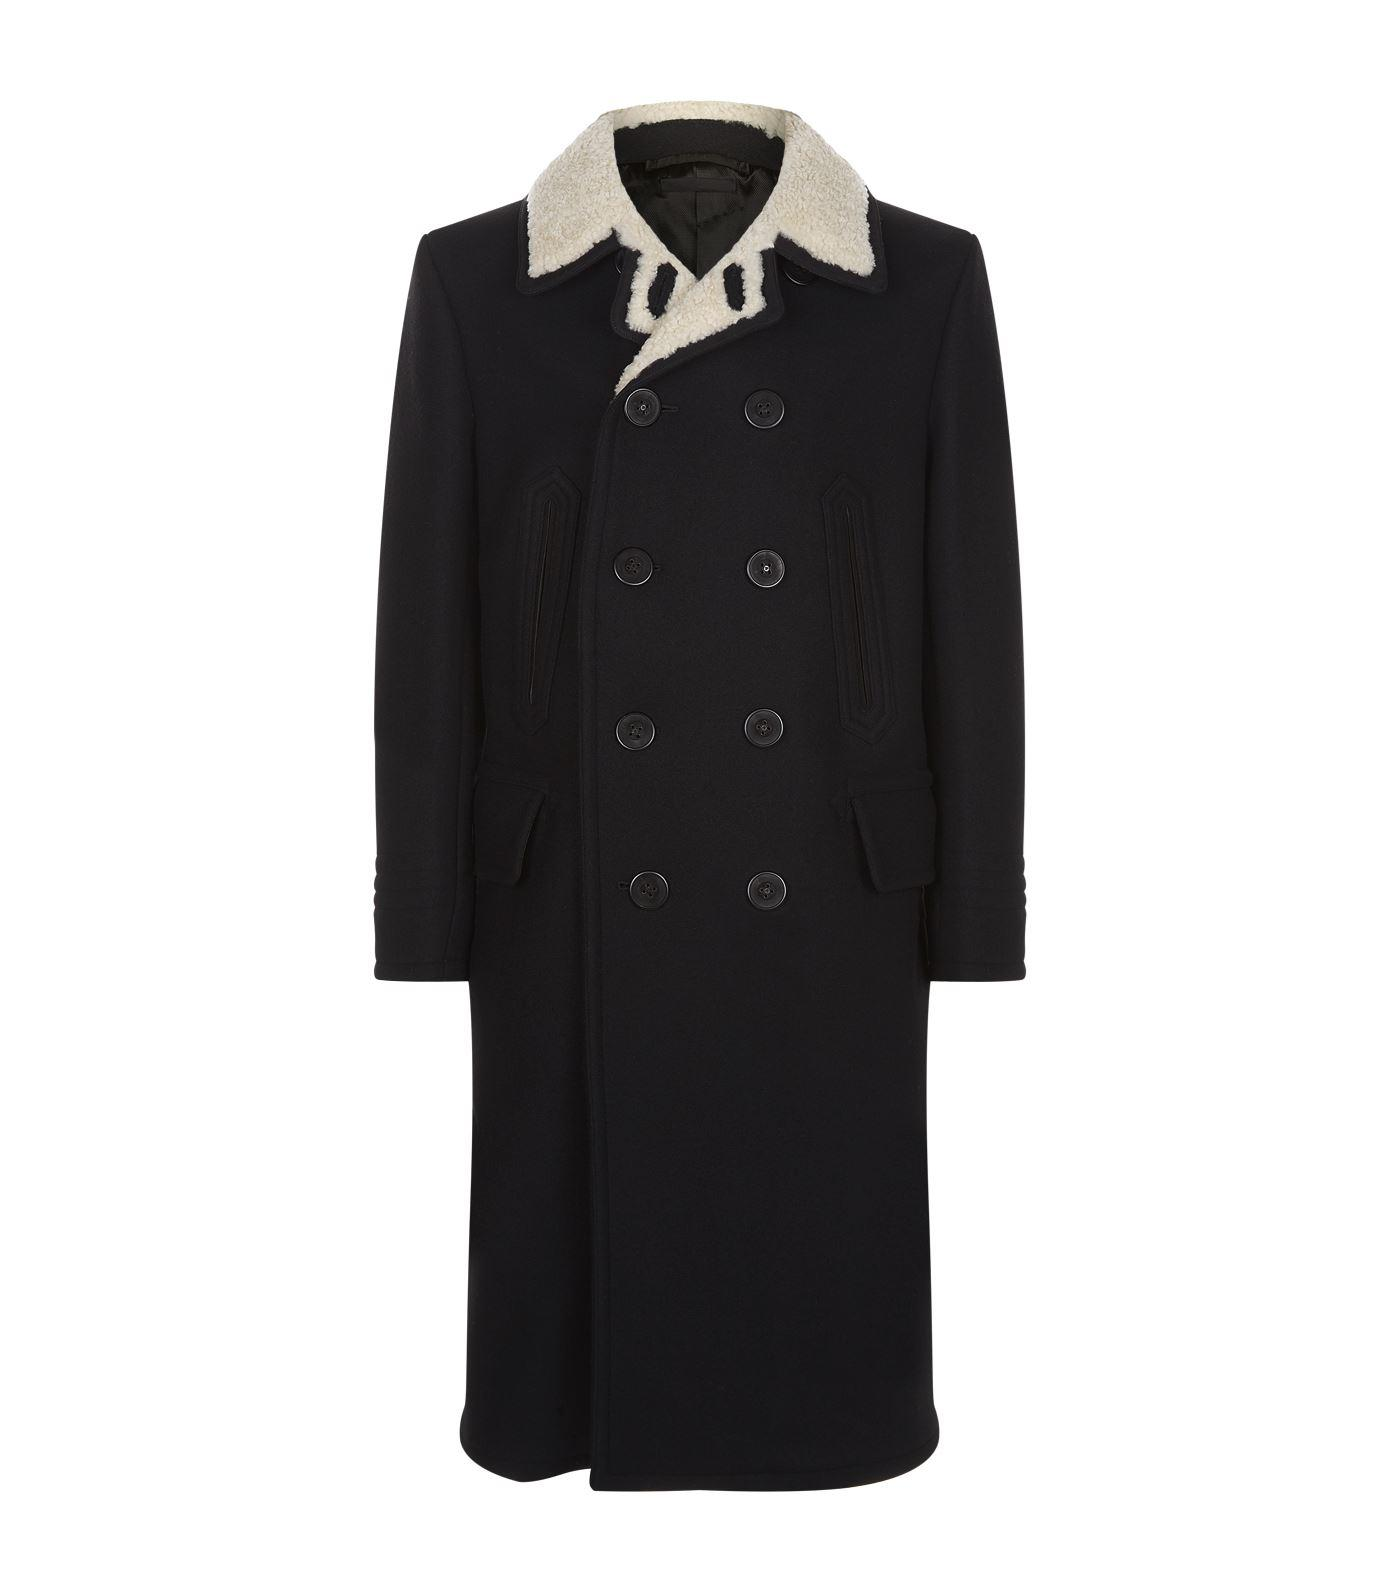 Tom Ford Double-breasted Wool Coat In Black